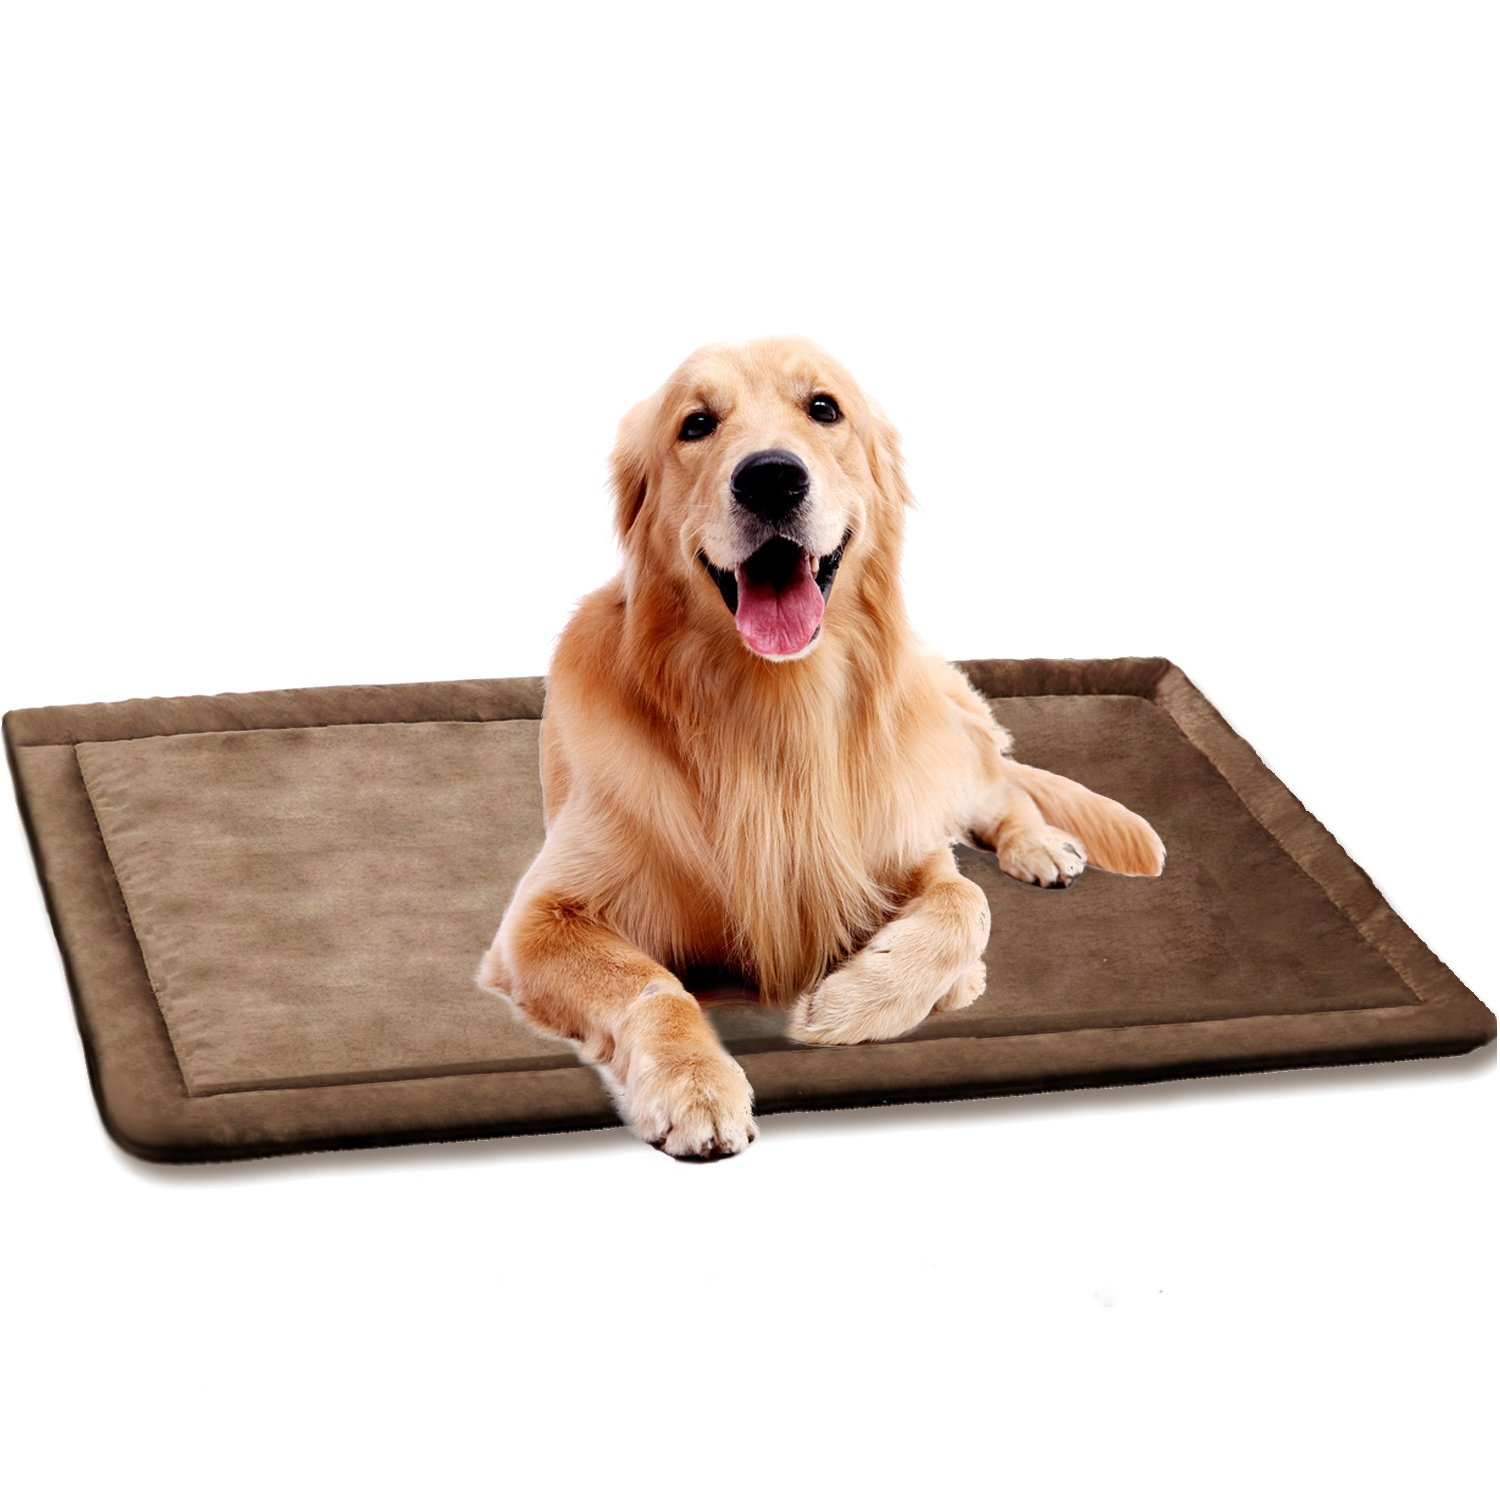 SHU UFANRO Dog Cushion Cover Dog Bed for Crate Dog Kennel Mat Pet Bed Mattress Washable Pad for Pet Cat 40'' x 27''